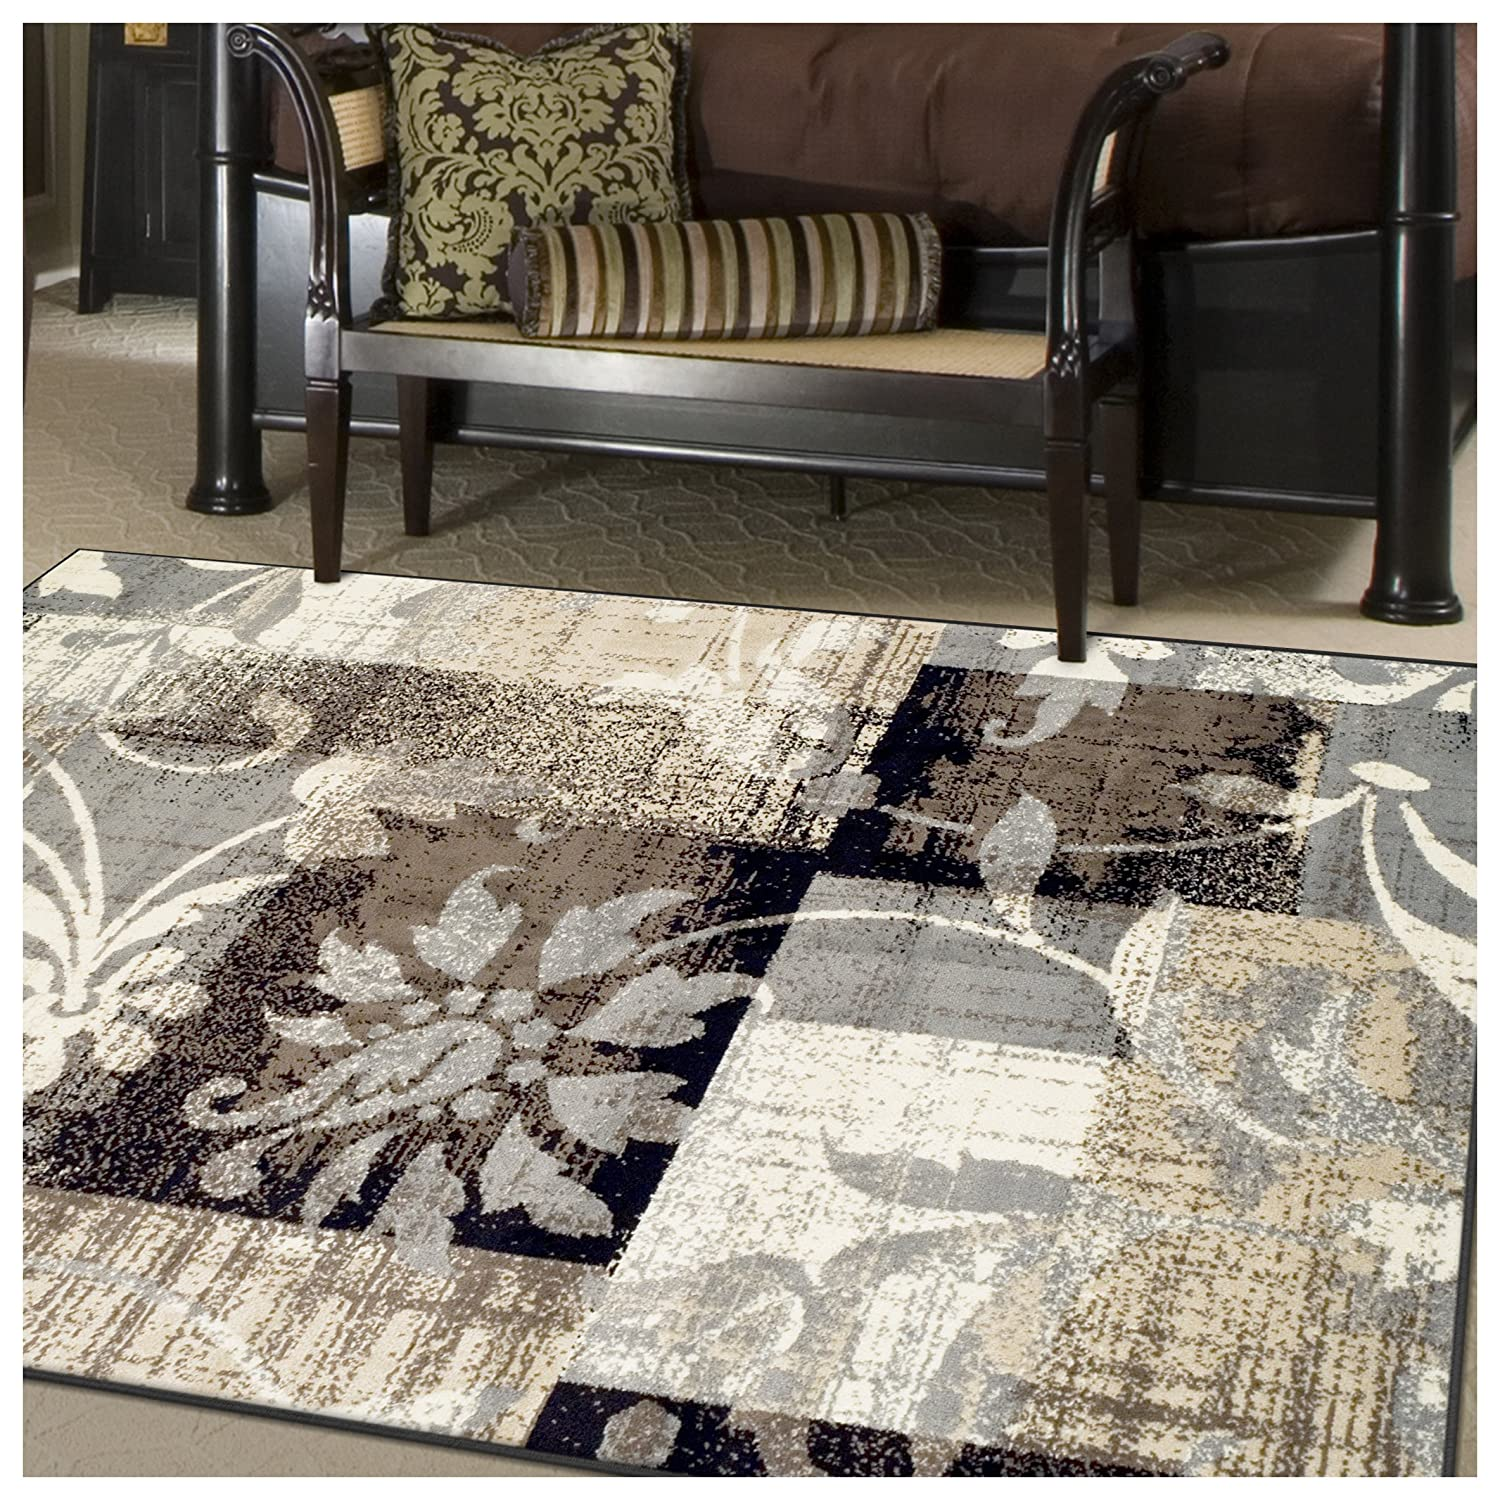 Superior Pastiche Collection Area Rug, 8mm Pile Height with Jute Backing, Chic Geometric Floral Patchwork Design, Fashionable and Affordable Woven Rugs - 2'7 x 8' Runner 2.6x8RUG-PASTICHE